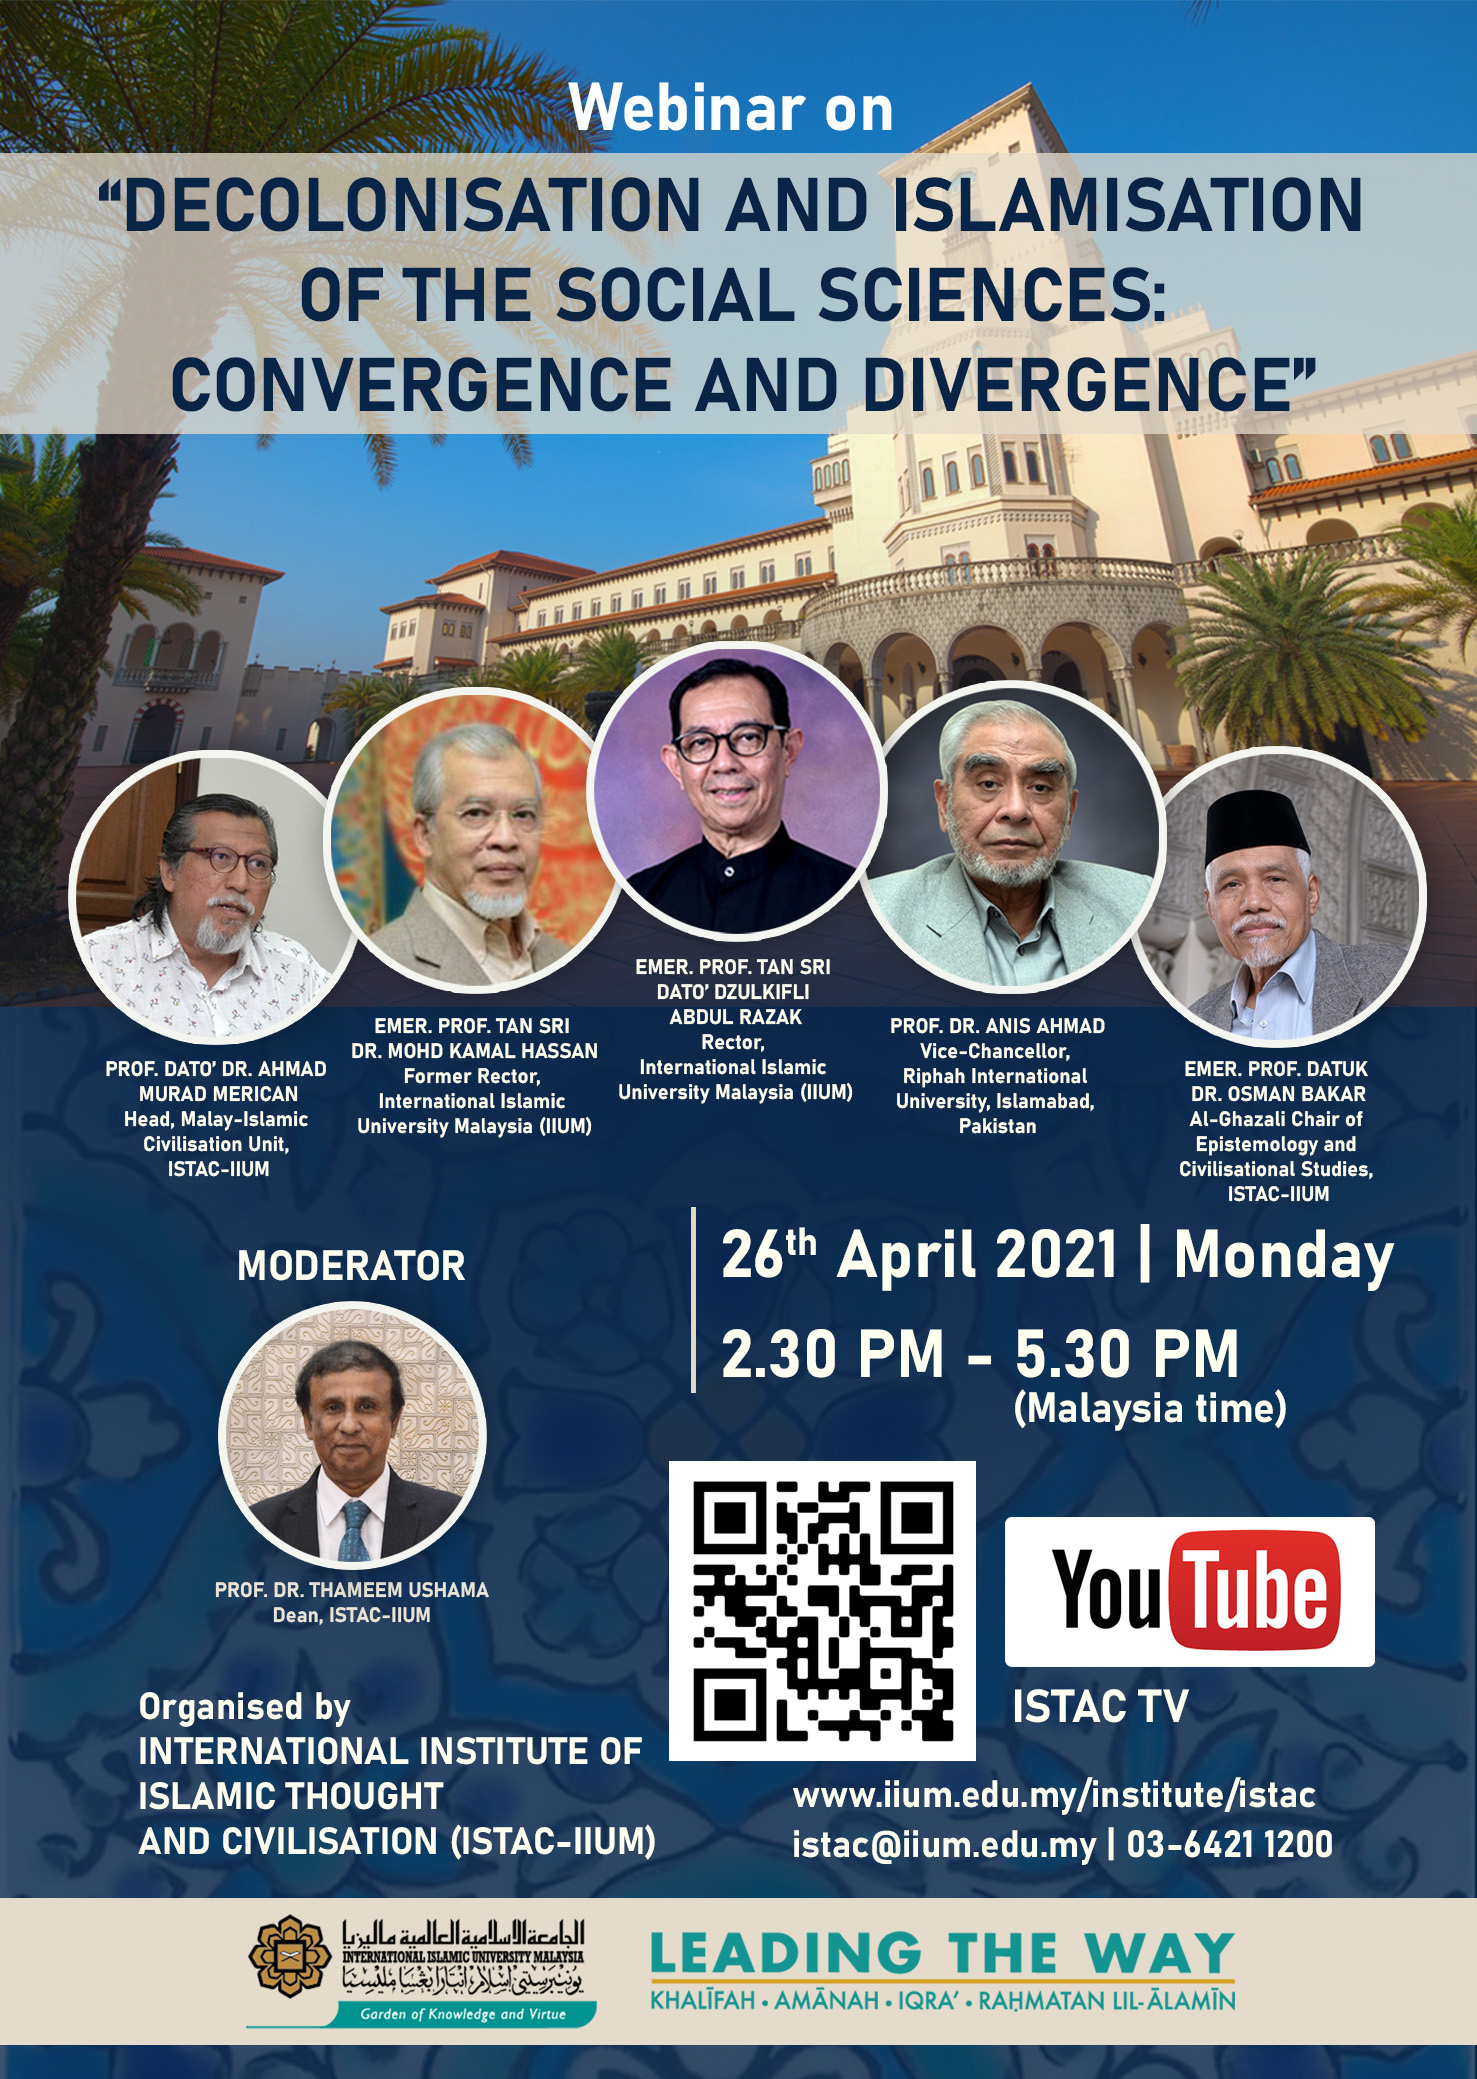 WEBINAR ON DECOLONISATION AND ISLAMISATION OF THE SOCIAL SCIENCES : CONVERGENCE AND DIVERGENCE